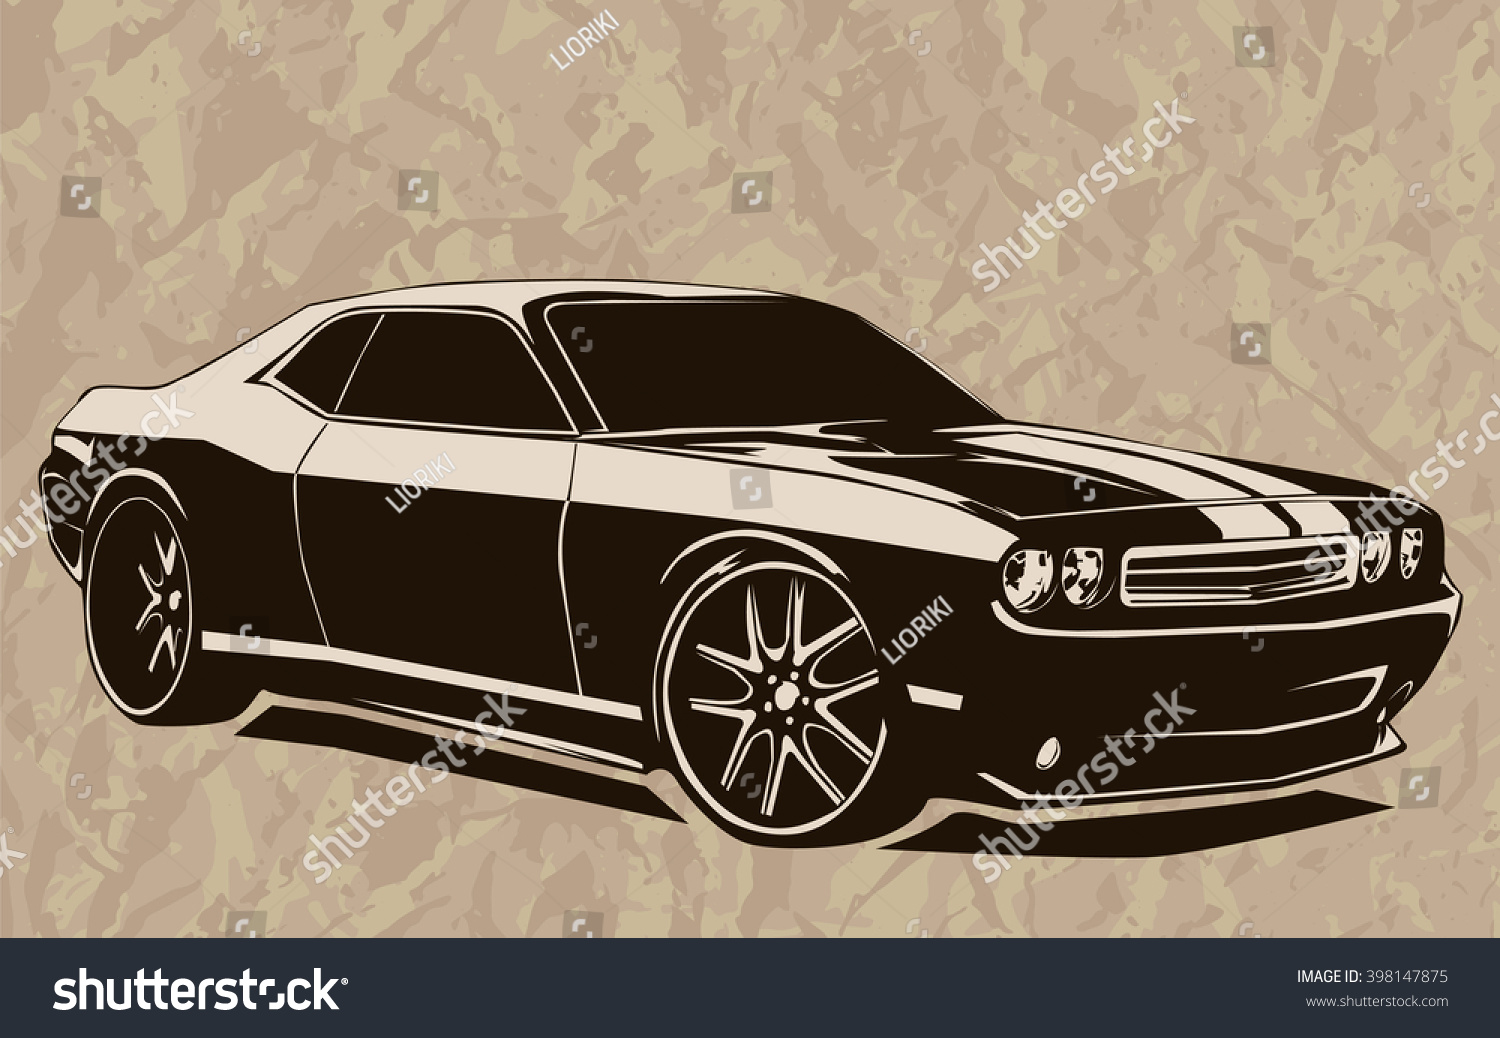 Old School Muscle Cars Inspired Cartoon Stock Photo (Photo, Vector ...